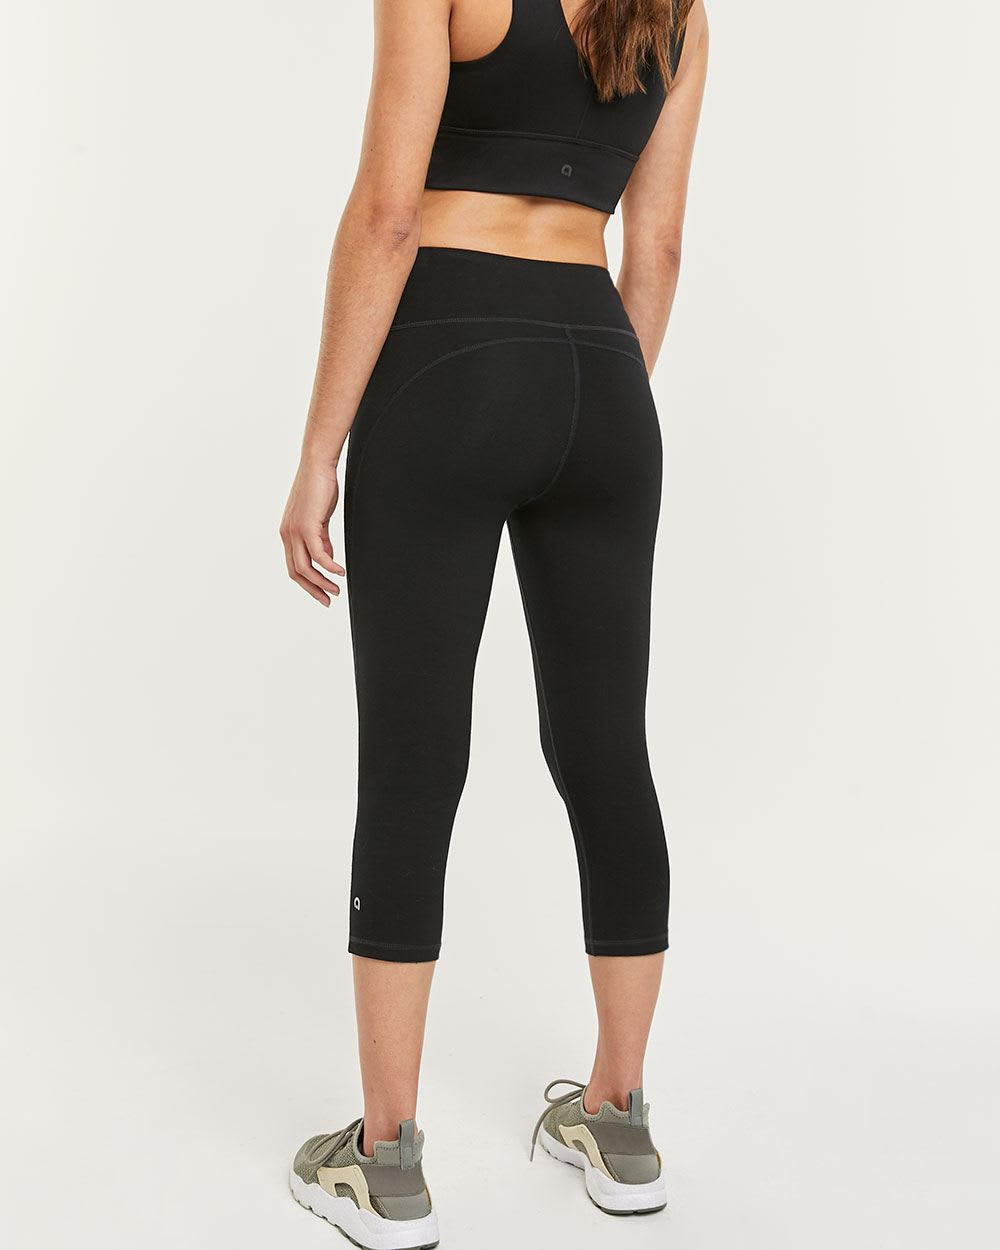 Sculptor Capri Leggings Hyba